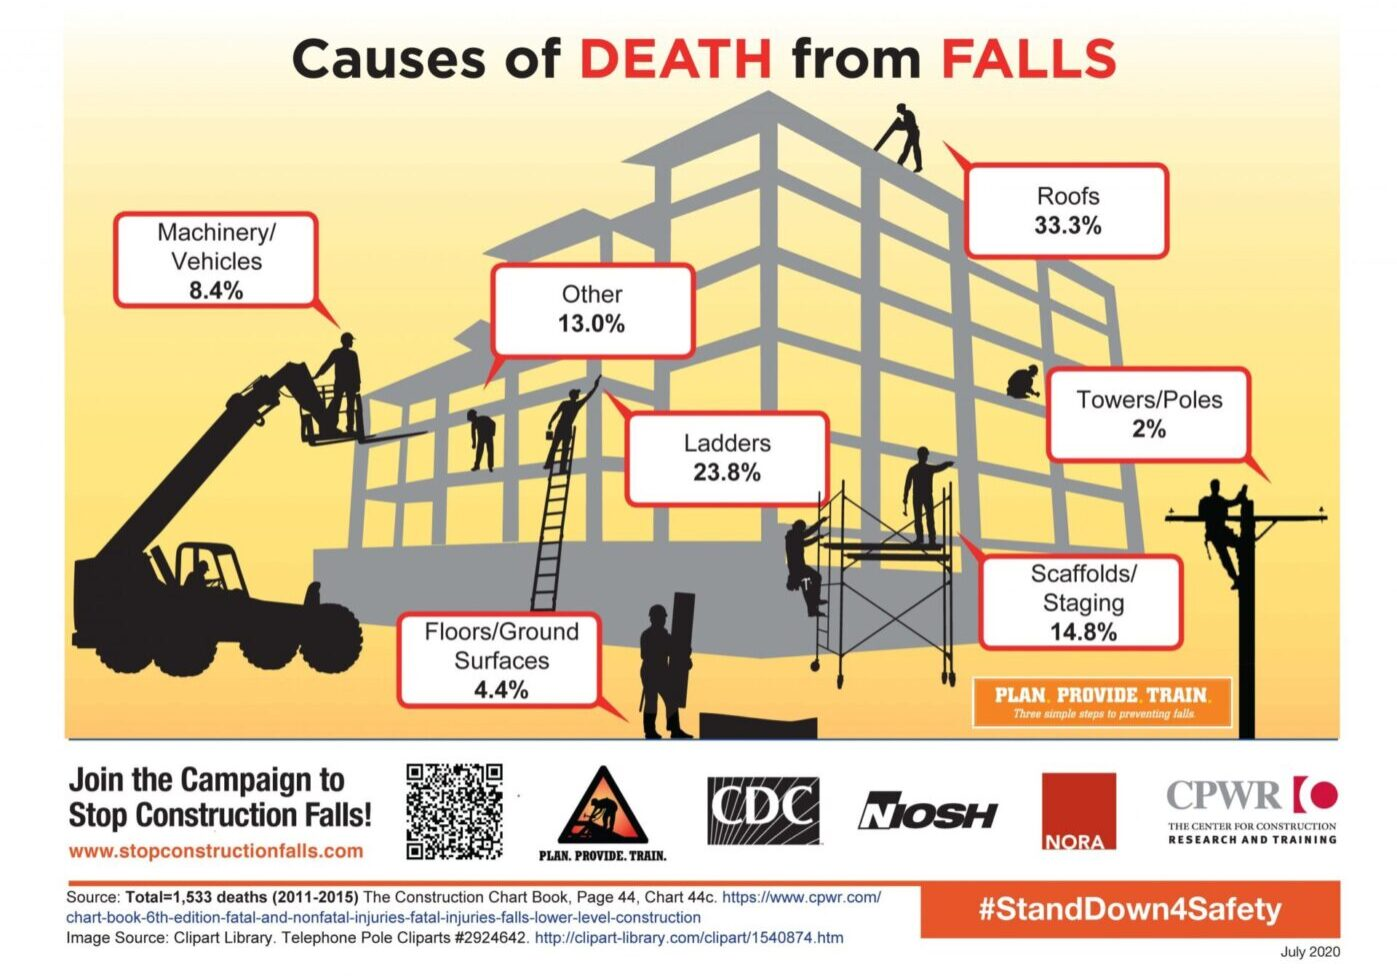 causes-of-death-from-falls-2020-update